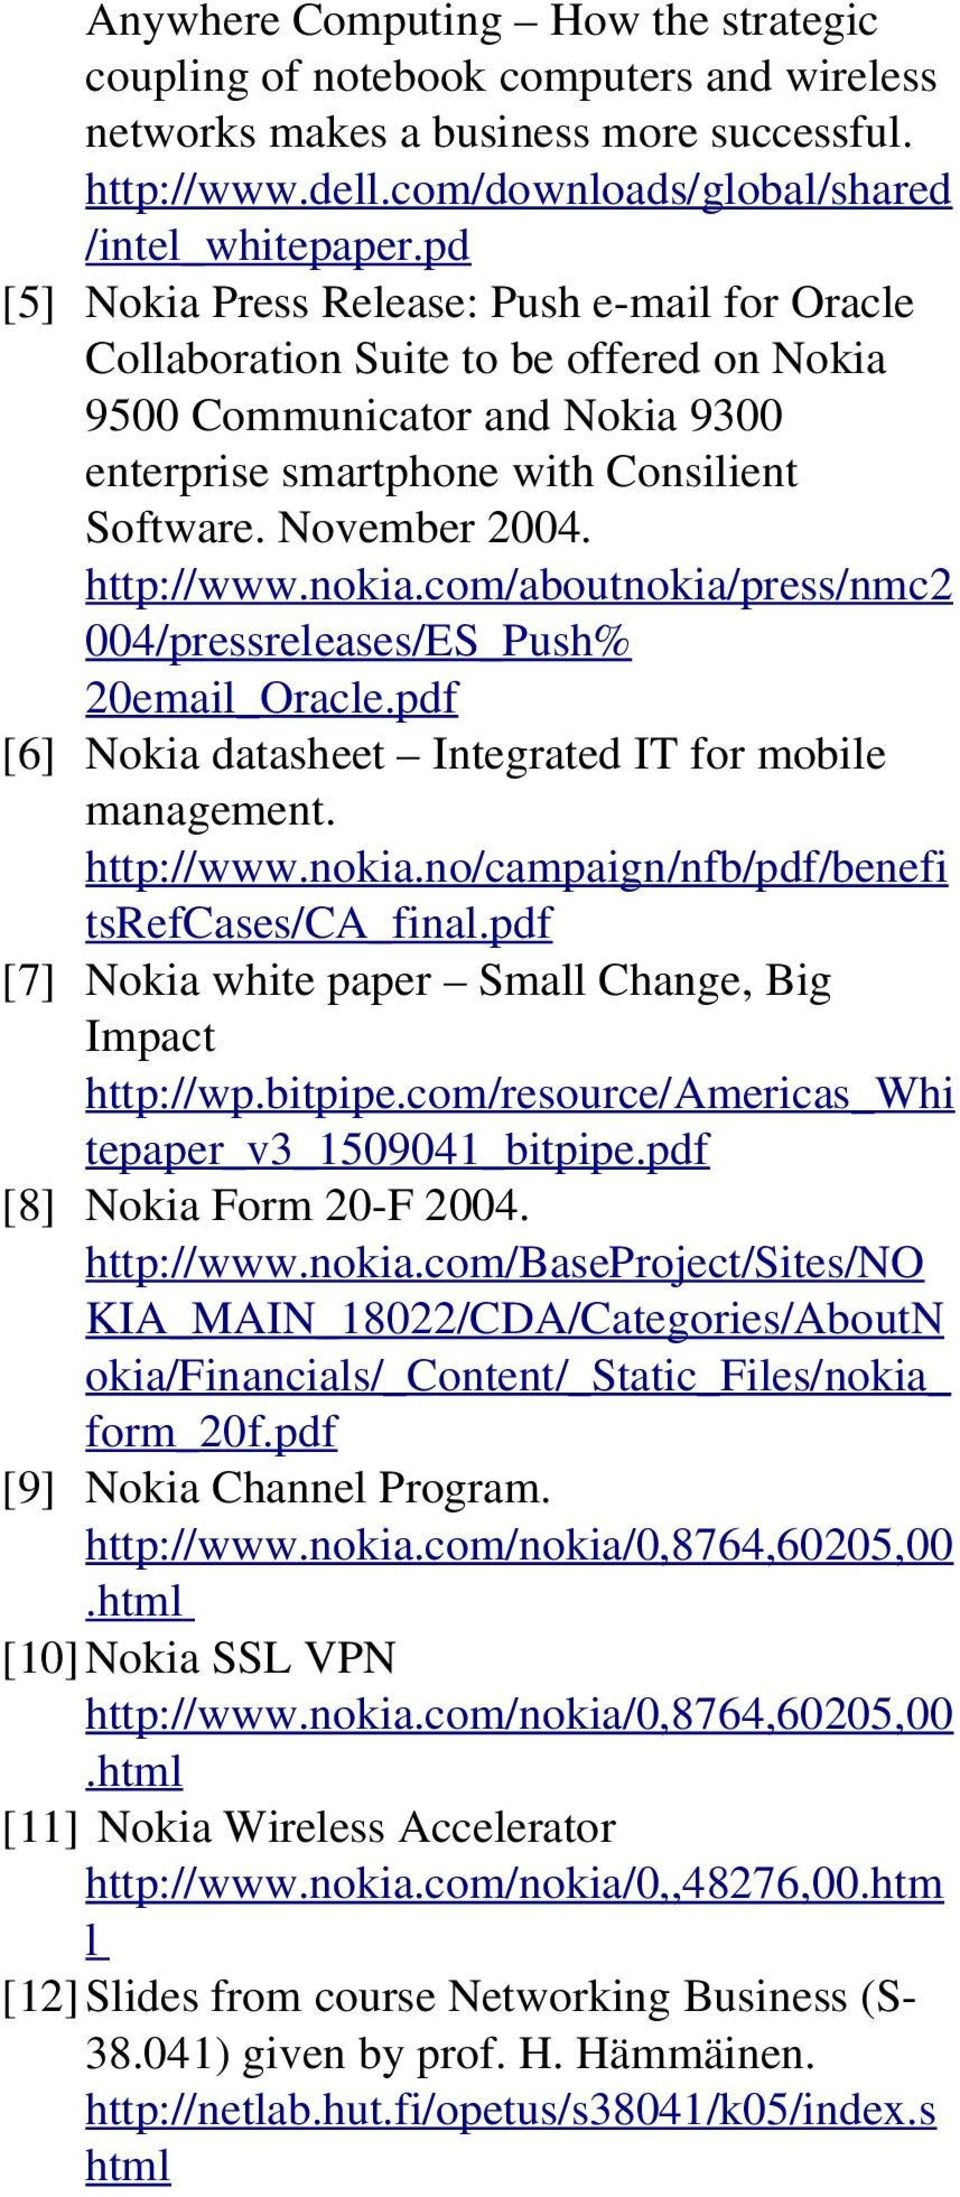 http://www.nokia.com/aboutnokia/press/nmc2 004/pressreleases/ES_Push% 20email_Oracle.pdf [6] Nokia datasheet Integrated IT for mobile management. http://www.nokia.no/campaign/nfb/pdf/benefi tsrefcases/ca_final.